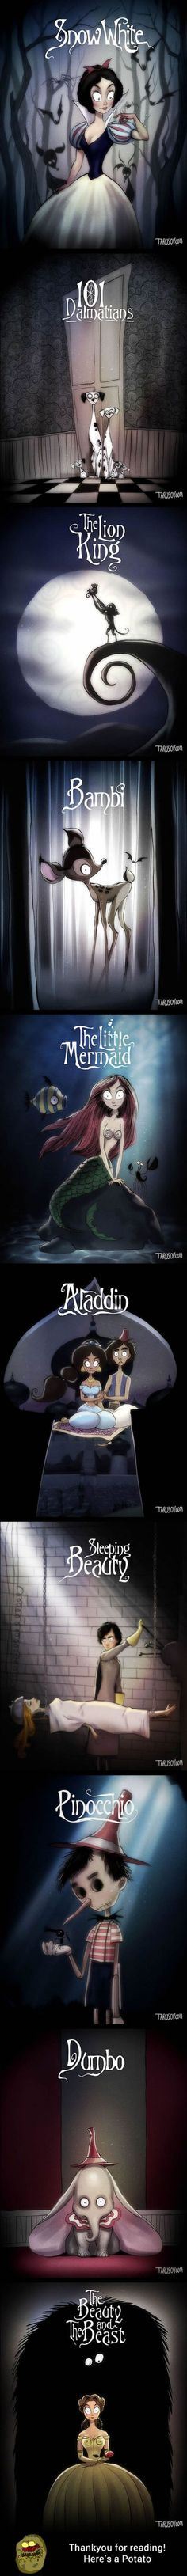 What if Tim Burton directed all Disney classic movies